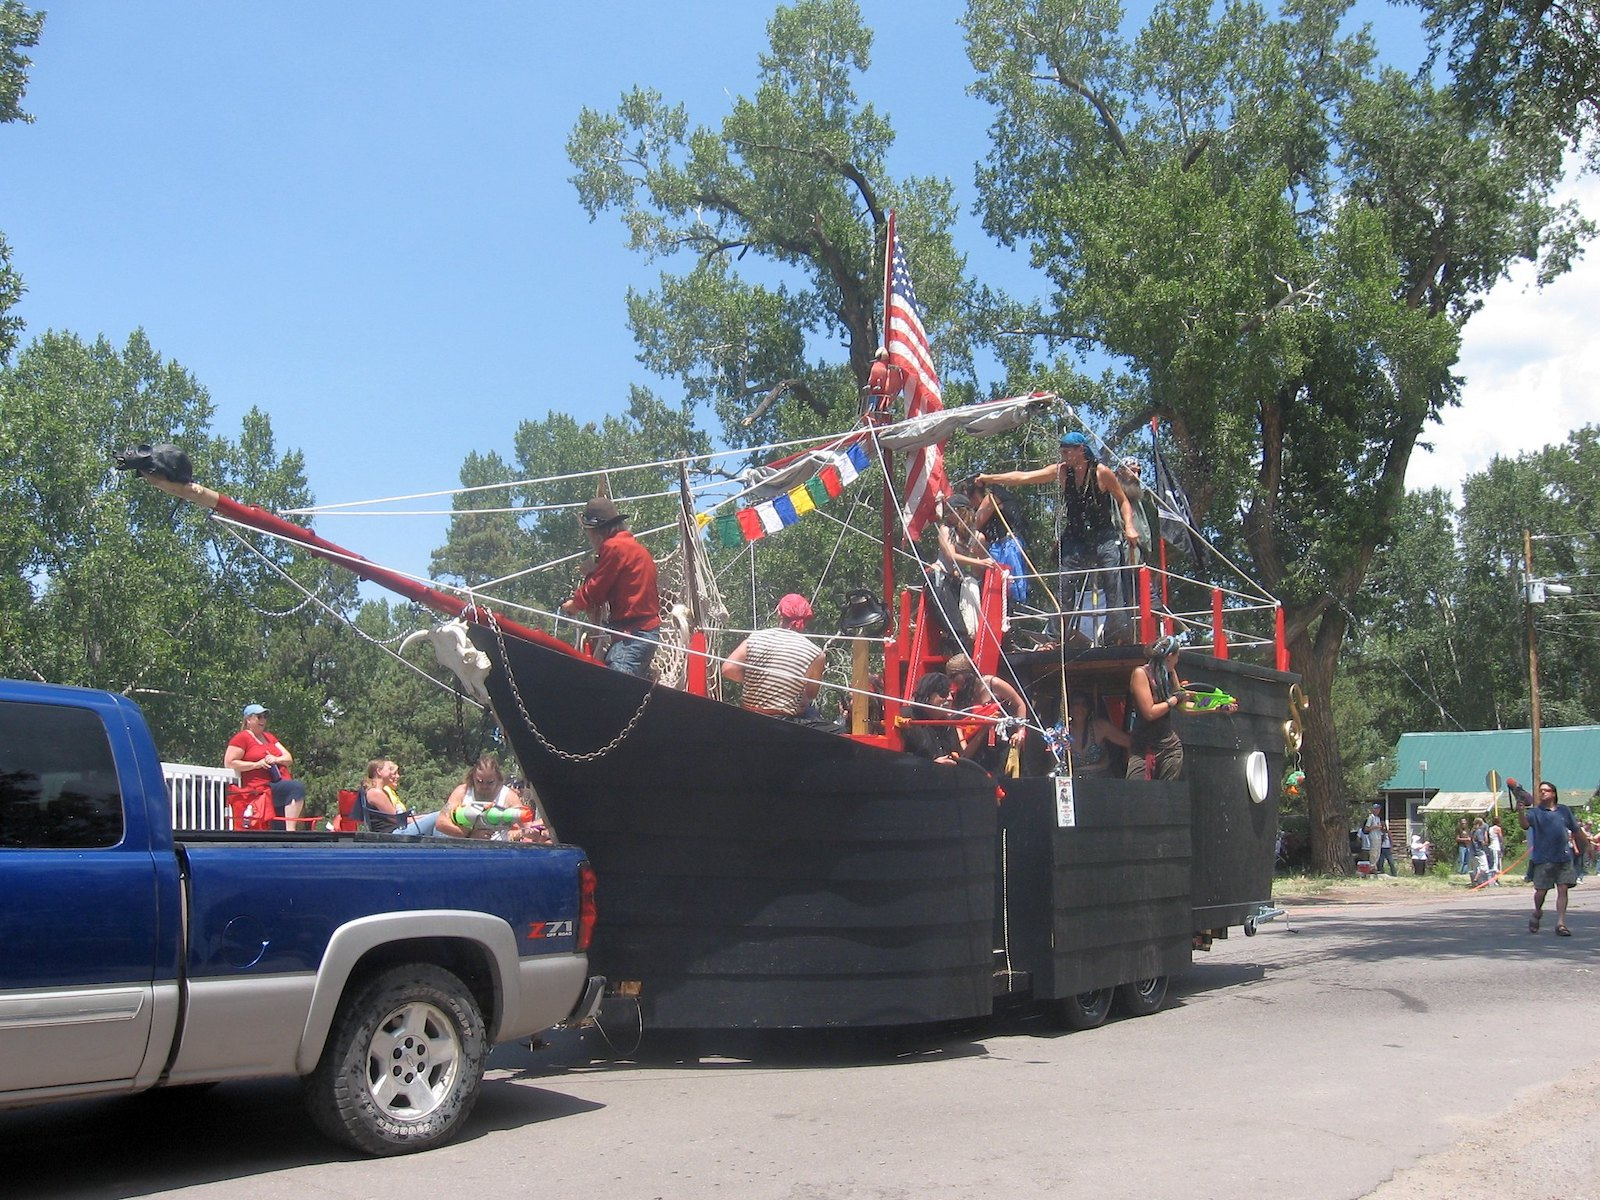 Image of a pirate ship at the Crestone fourth of July parade in Colorado